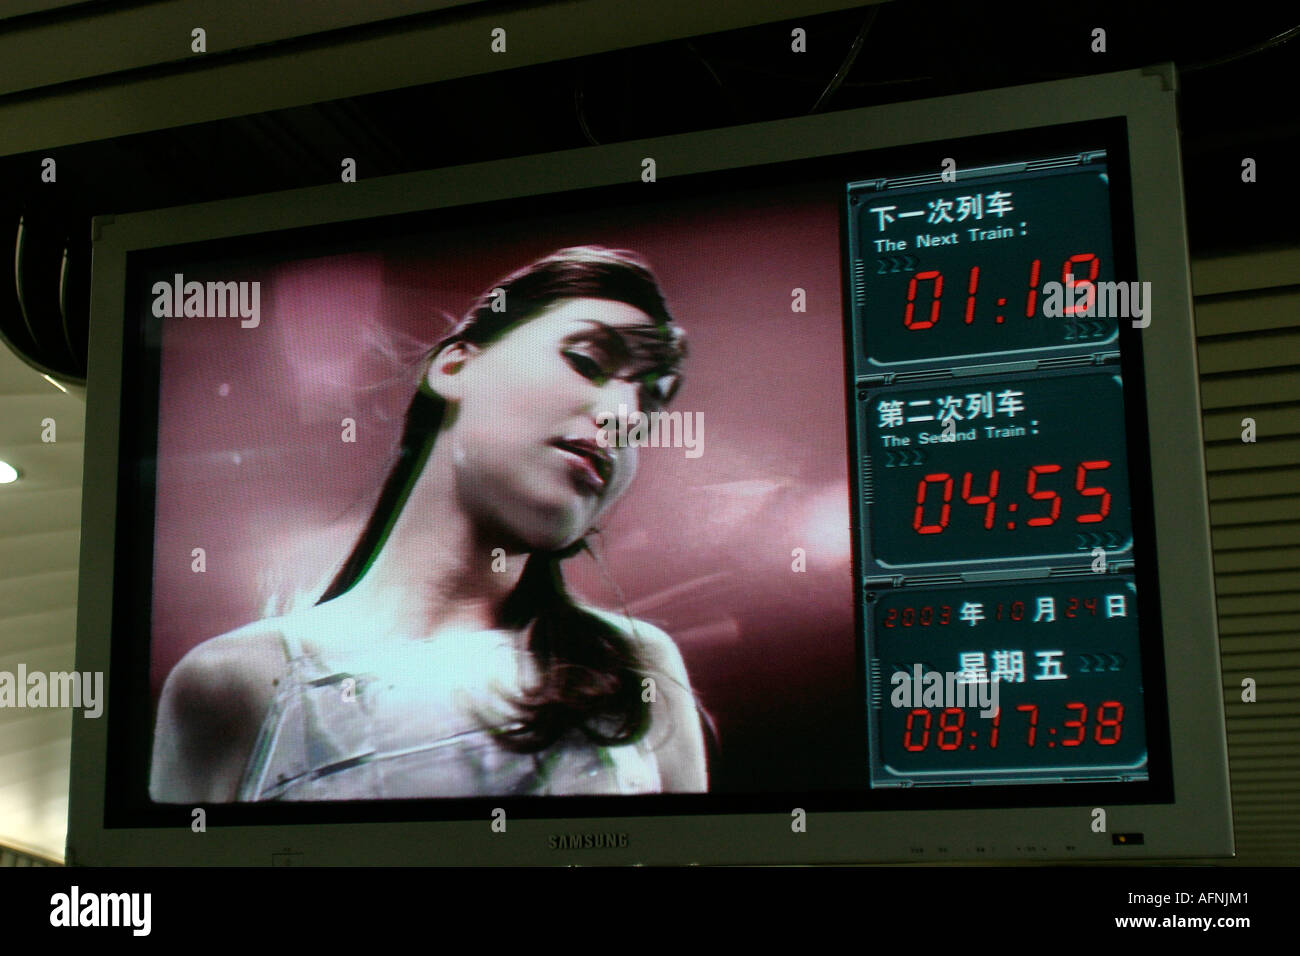 Metro time board - Stock Image